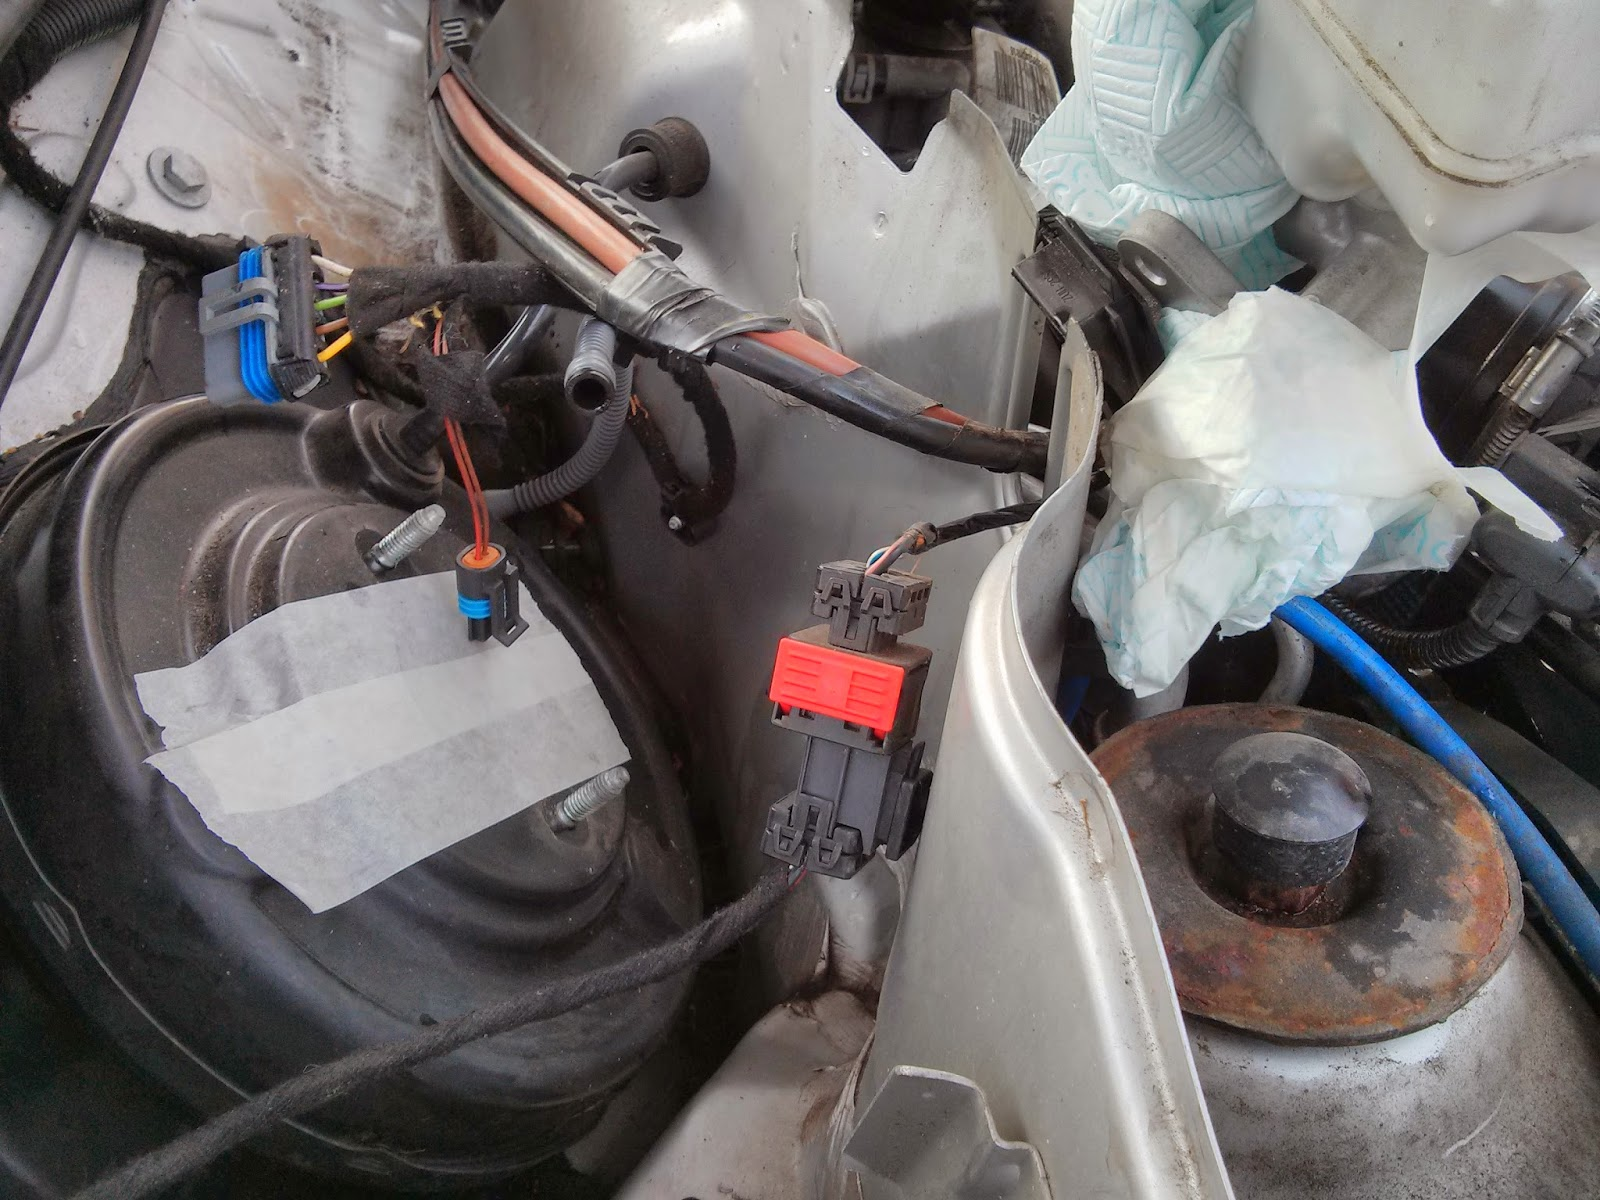 Cars Code And Other Fun Stuff Corsa C Water Leak Challenge Vauxhall Battery Wiring Undo The Master Cylinder Bolts 13mm Move It Out Of Way I Find Best To Hold Cables Underneath